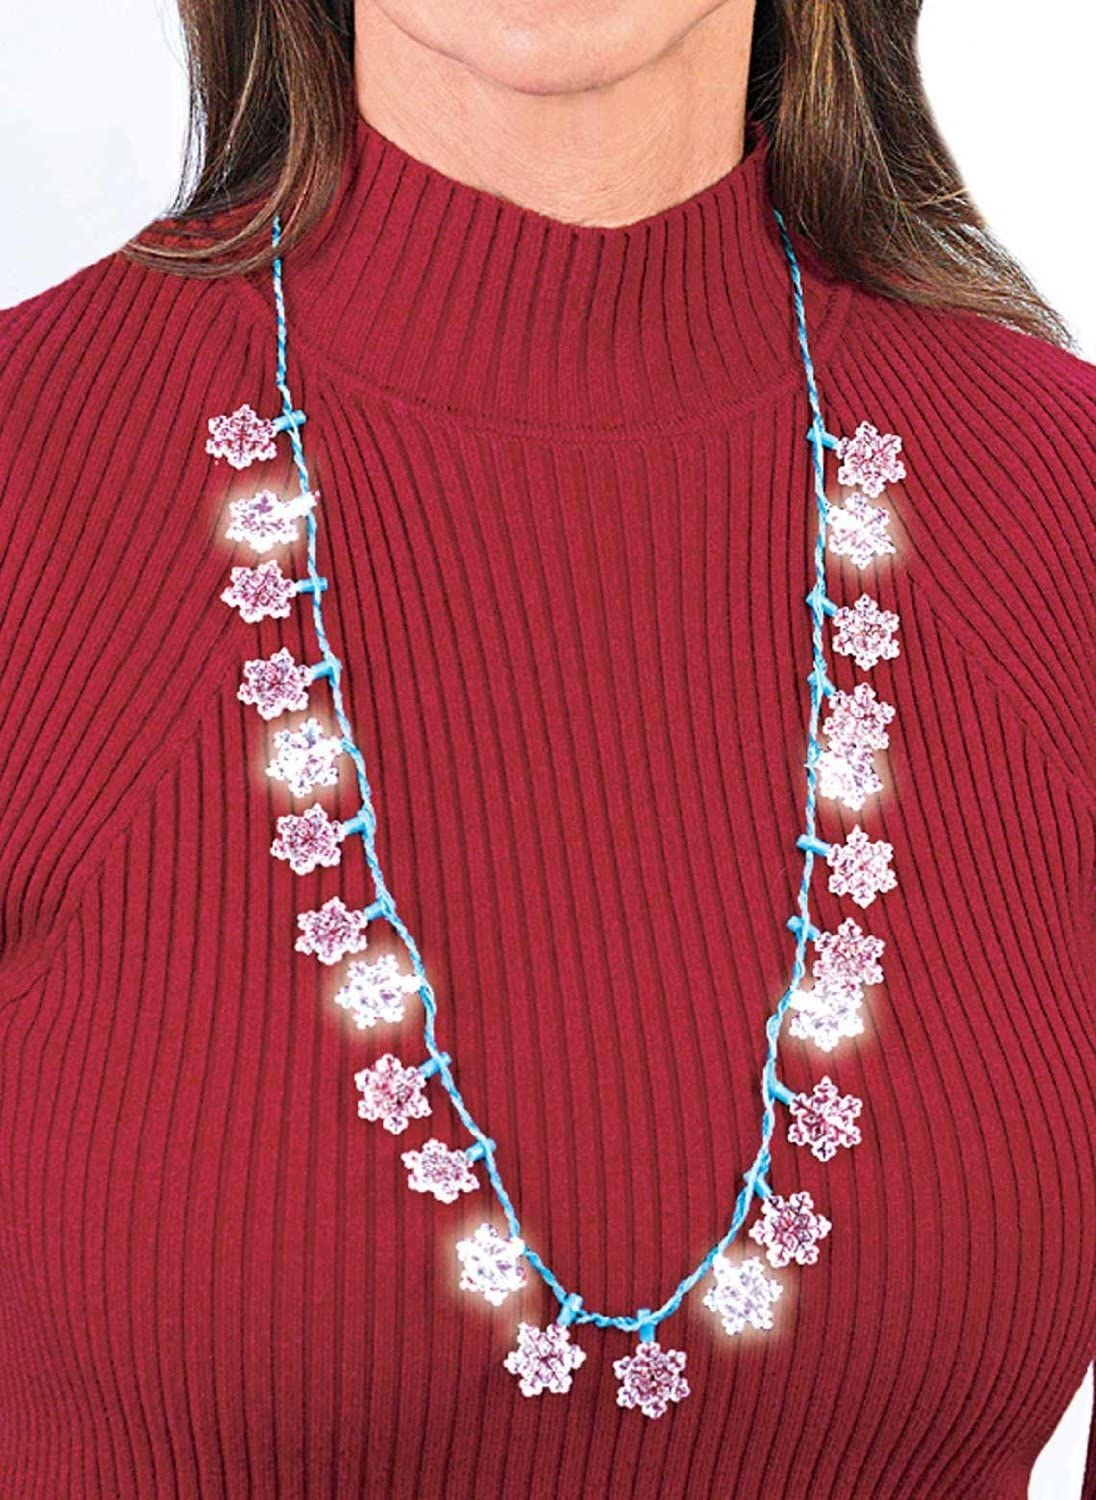 Christmas Accessory Snowflake Light-Up Necklace